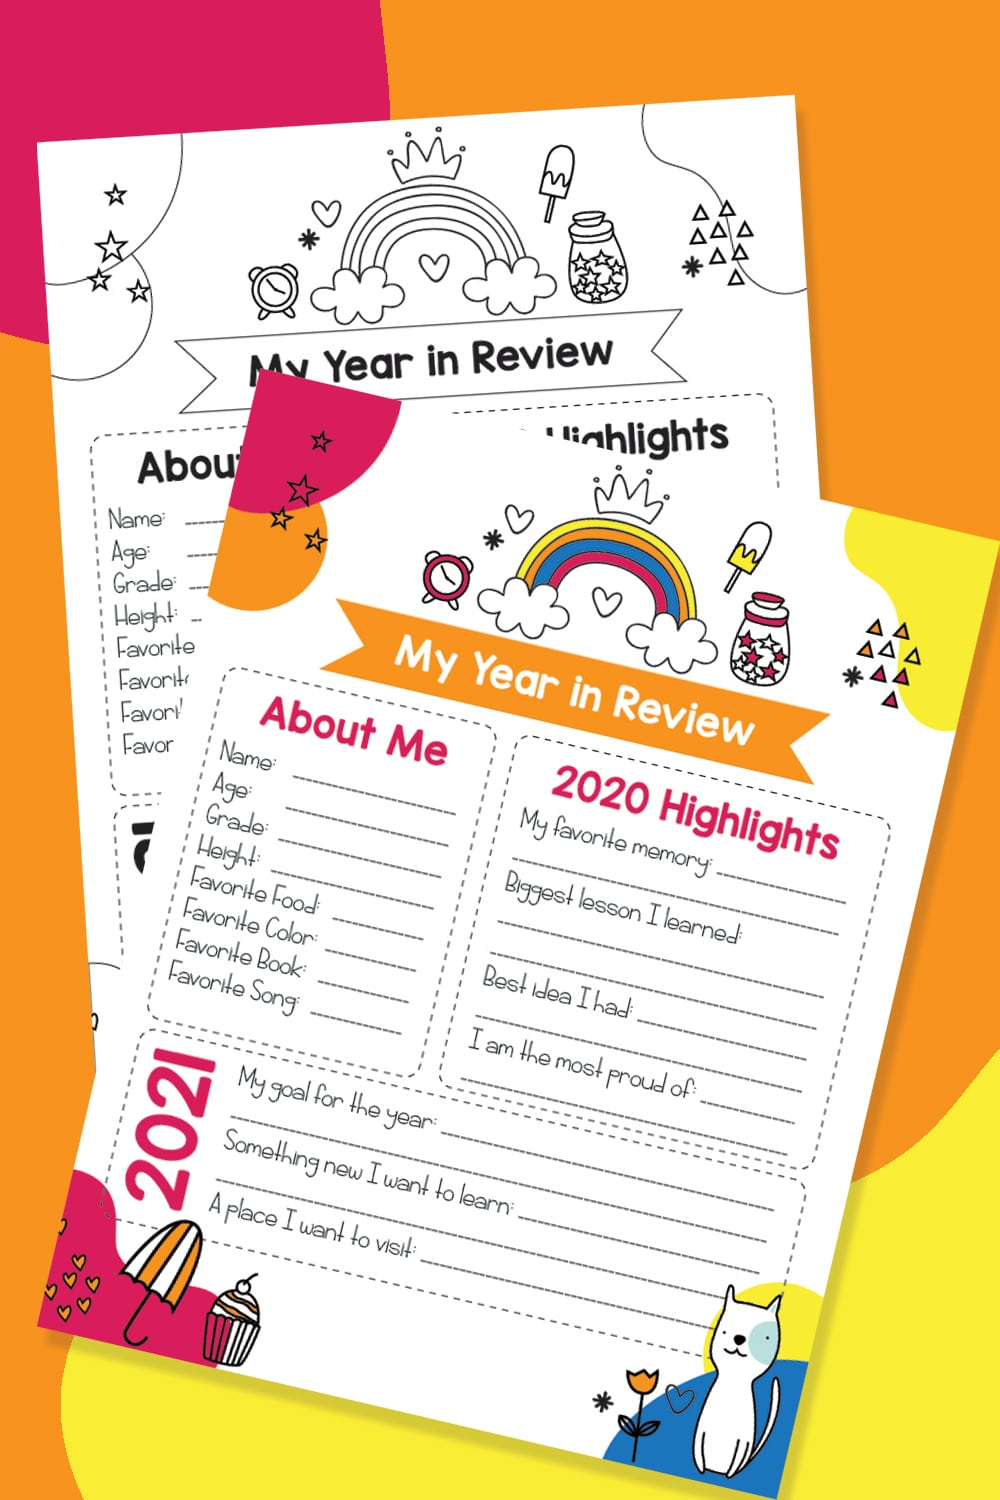 This free printable Year in Review for kids is a wonderful keepsake and a fun New Year's Eve family activity to reflect on the past year. #newyearseve #kidsactivities #freeprintable #yearinreview via @wondermomwannab